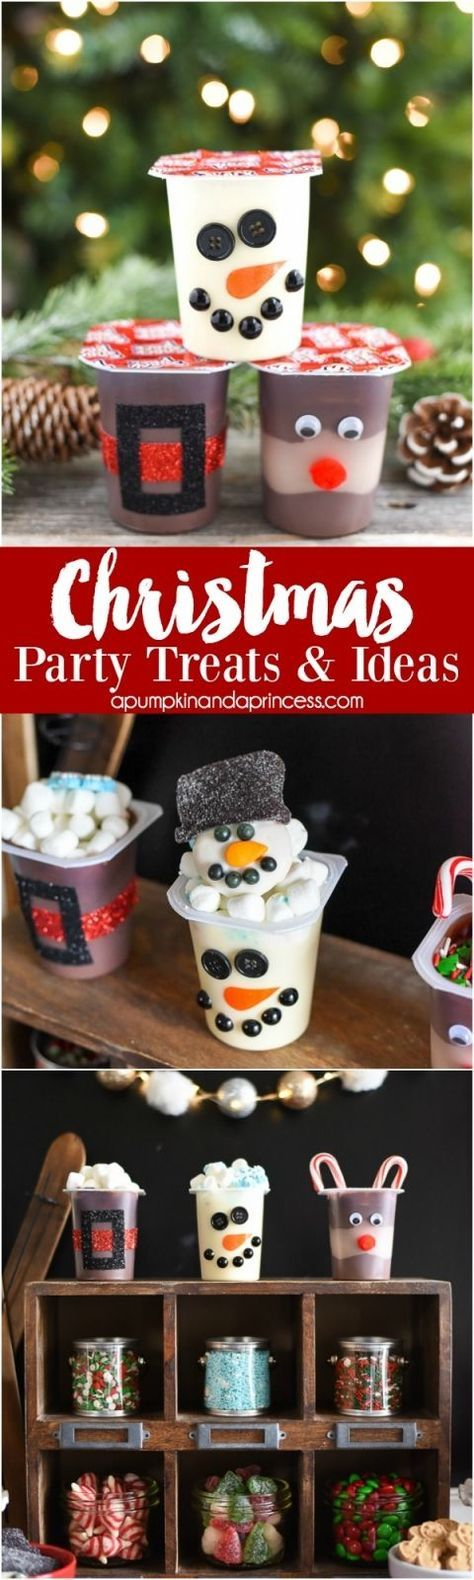 Christmas Party Ideas For Elementary Students images